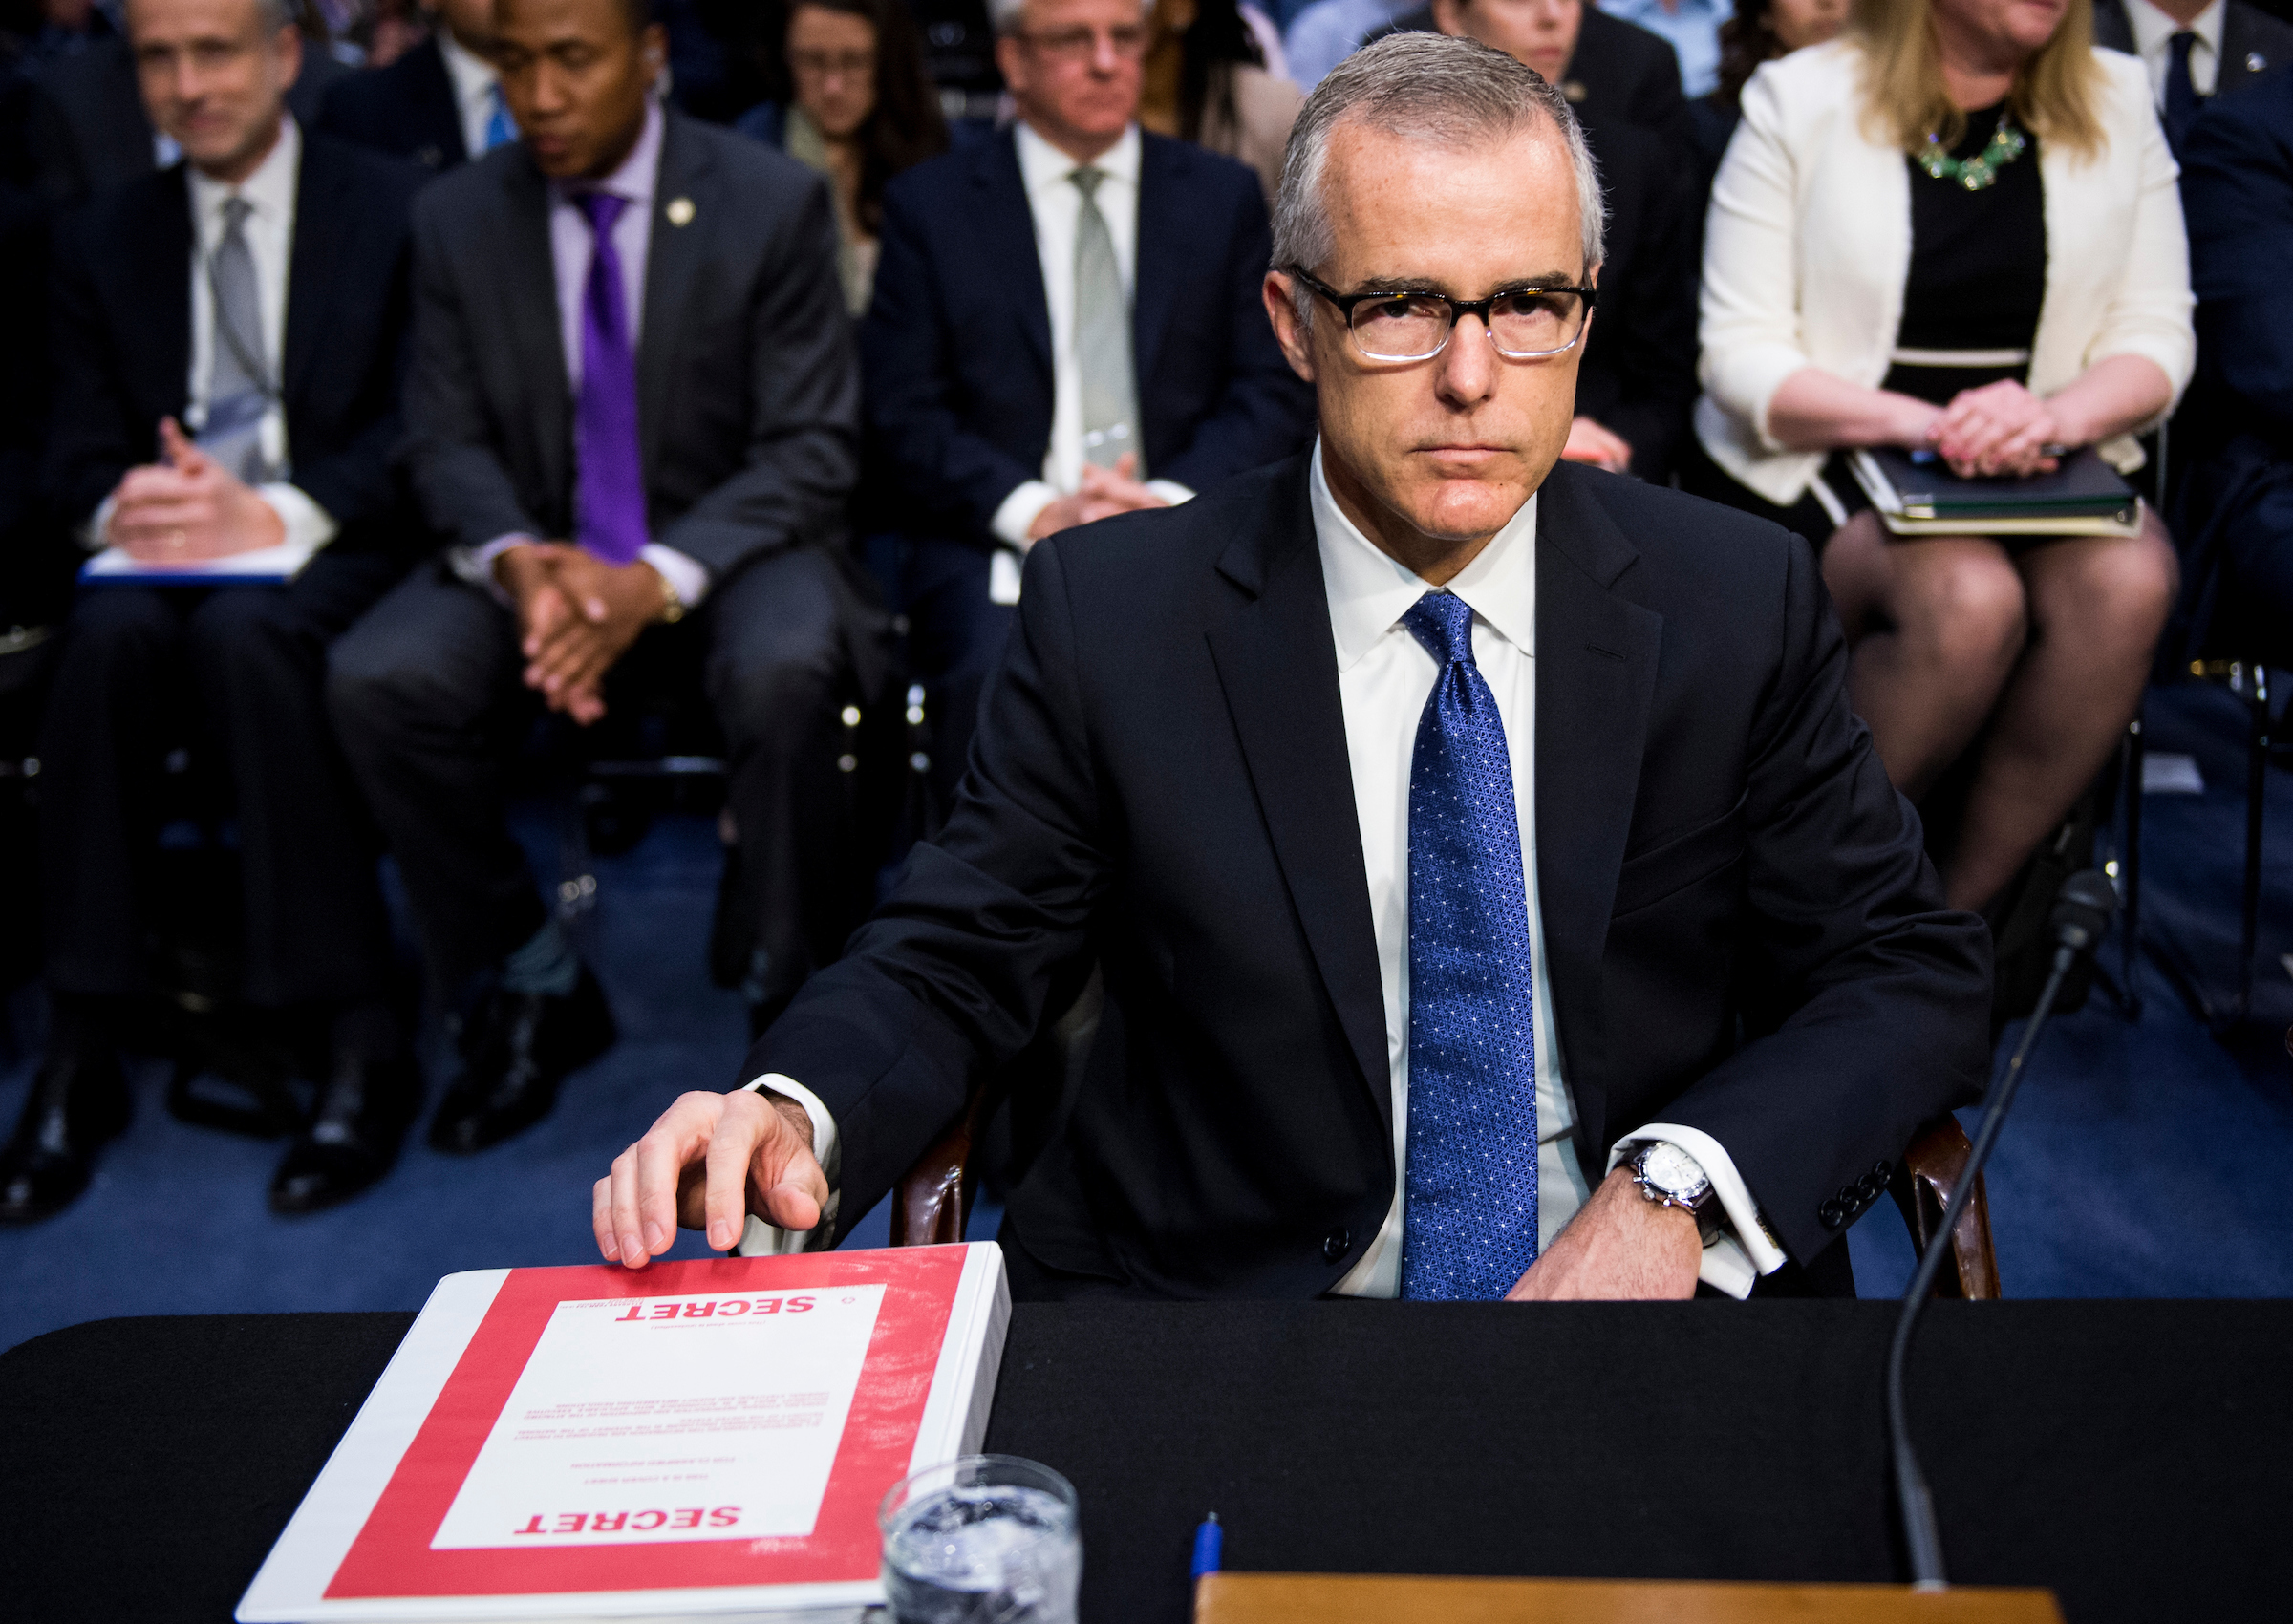 MAY 11: Acting FBI Director Andrew McCabe prepares to testify during the Senate Select Intelligence Committee hearing on World Wide Threats, two days after James B. Comey was fired as FBI director by President Donald Trump. (Bill Clark/CQ Roll Call)